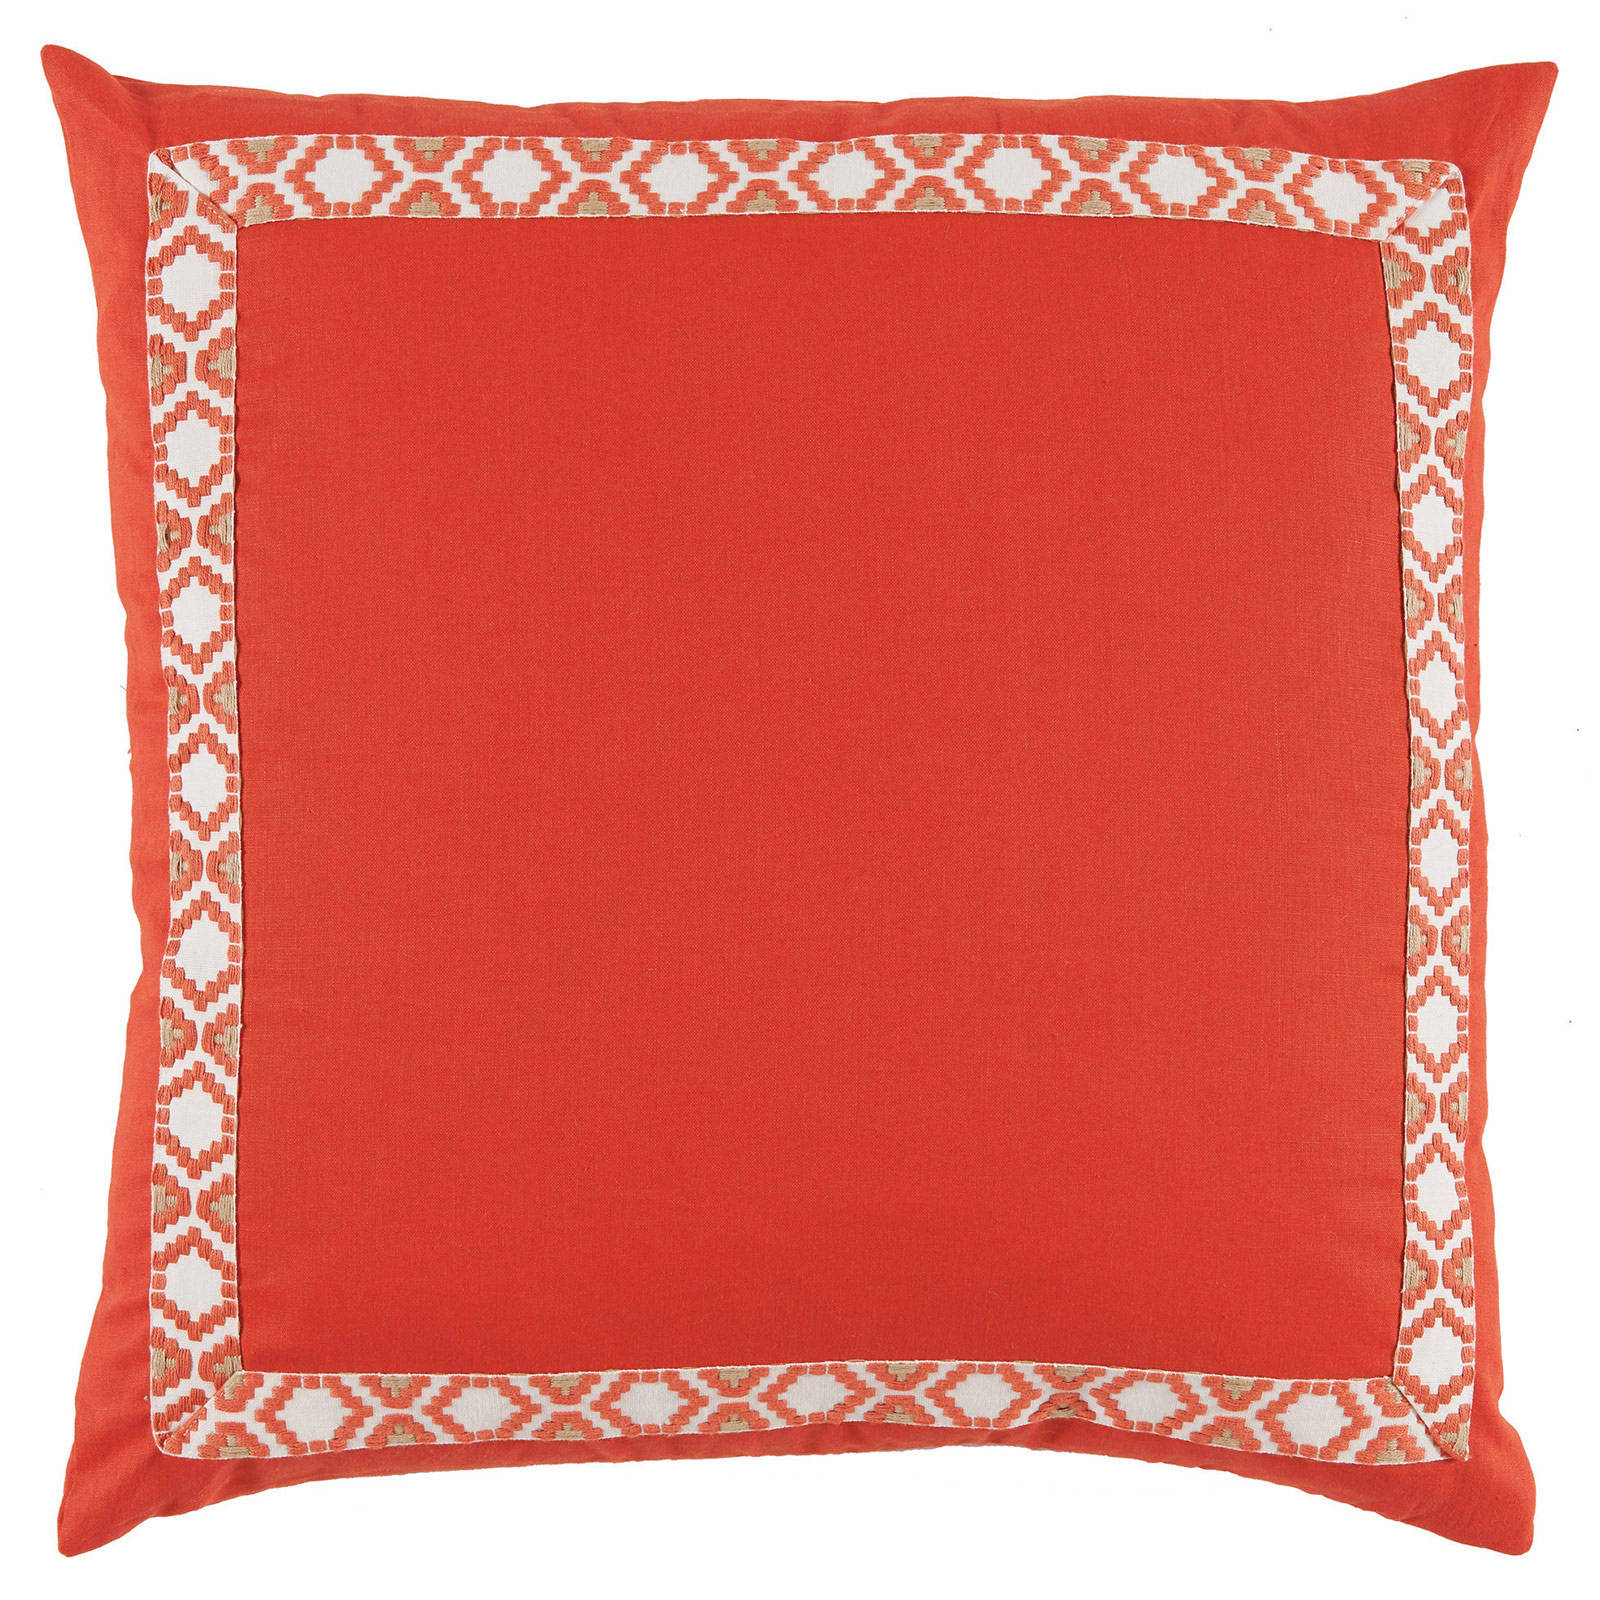 Kaia Global Bright Coral Linen Trim Band Pillow - 24x24